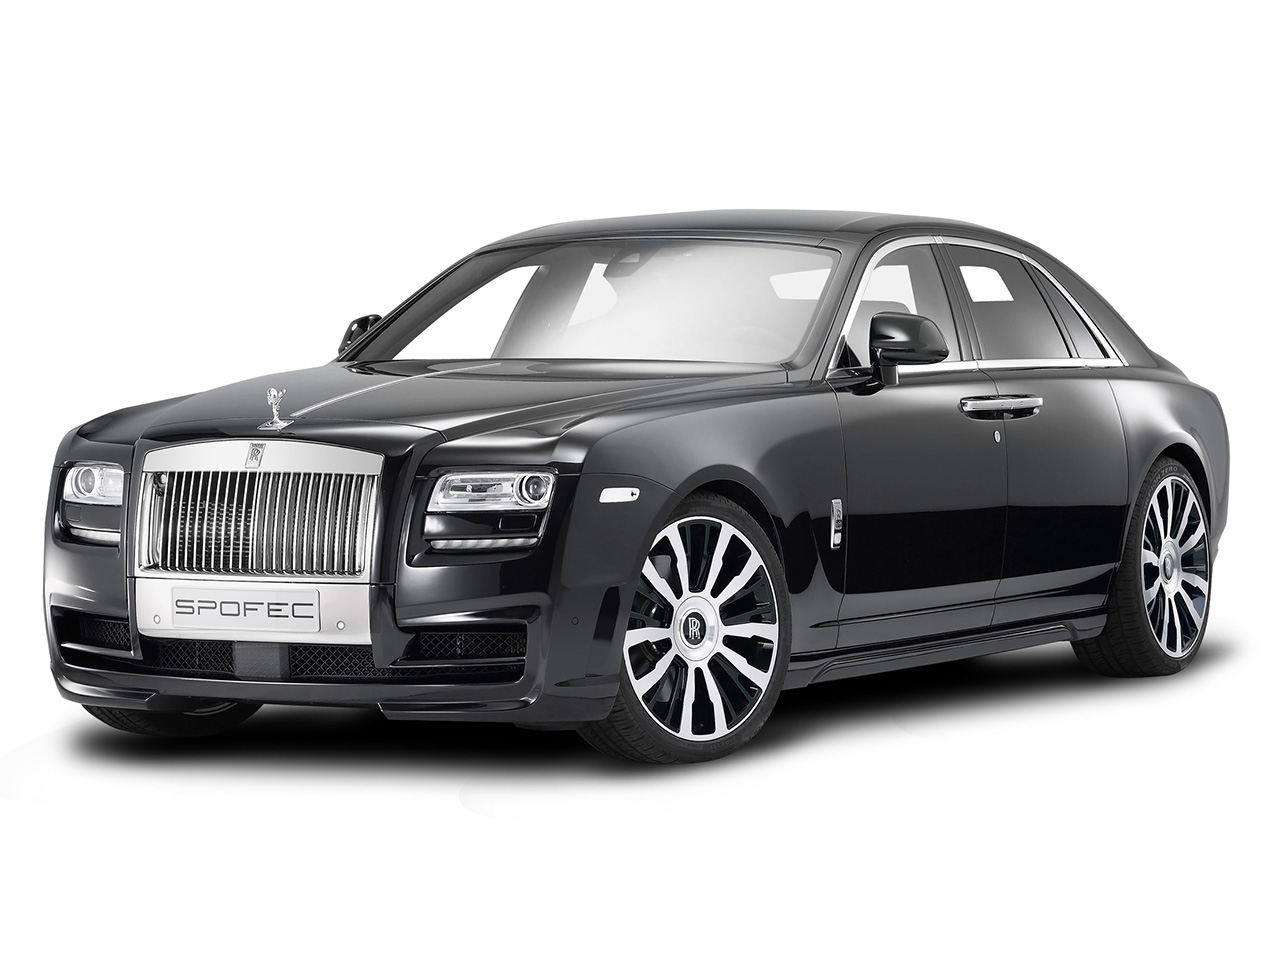 2018 rolls royce ghost prices in qatar gulf specs. Black Bedroom Furniture Sets. Home Design Ideas